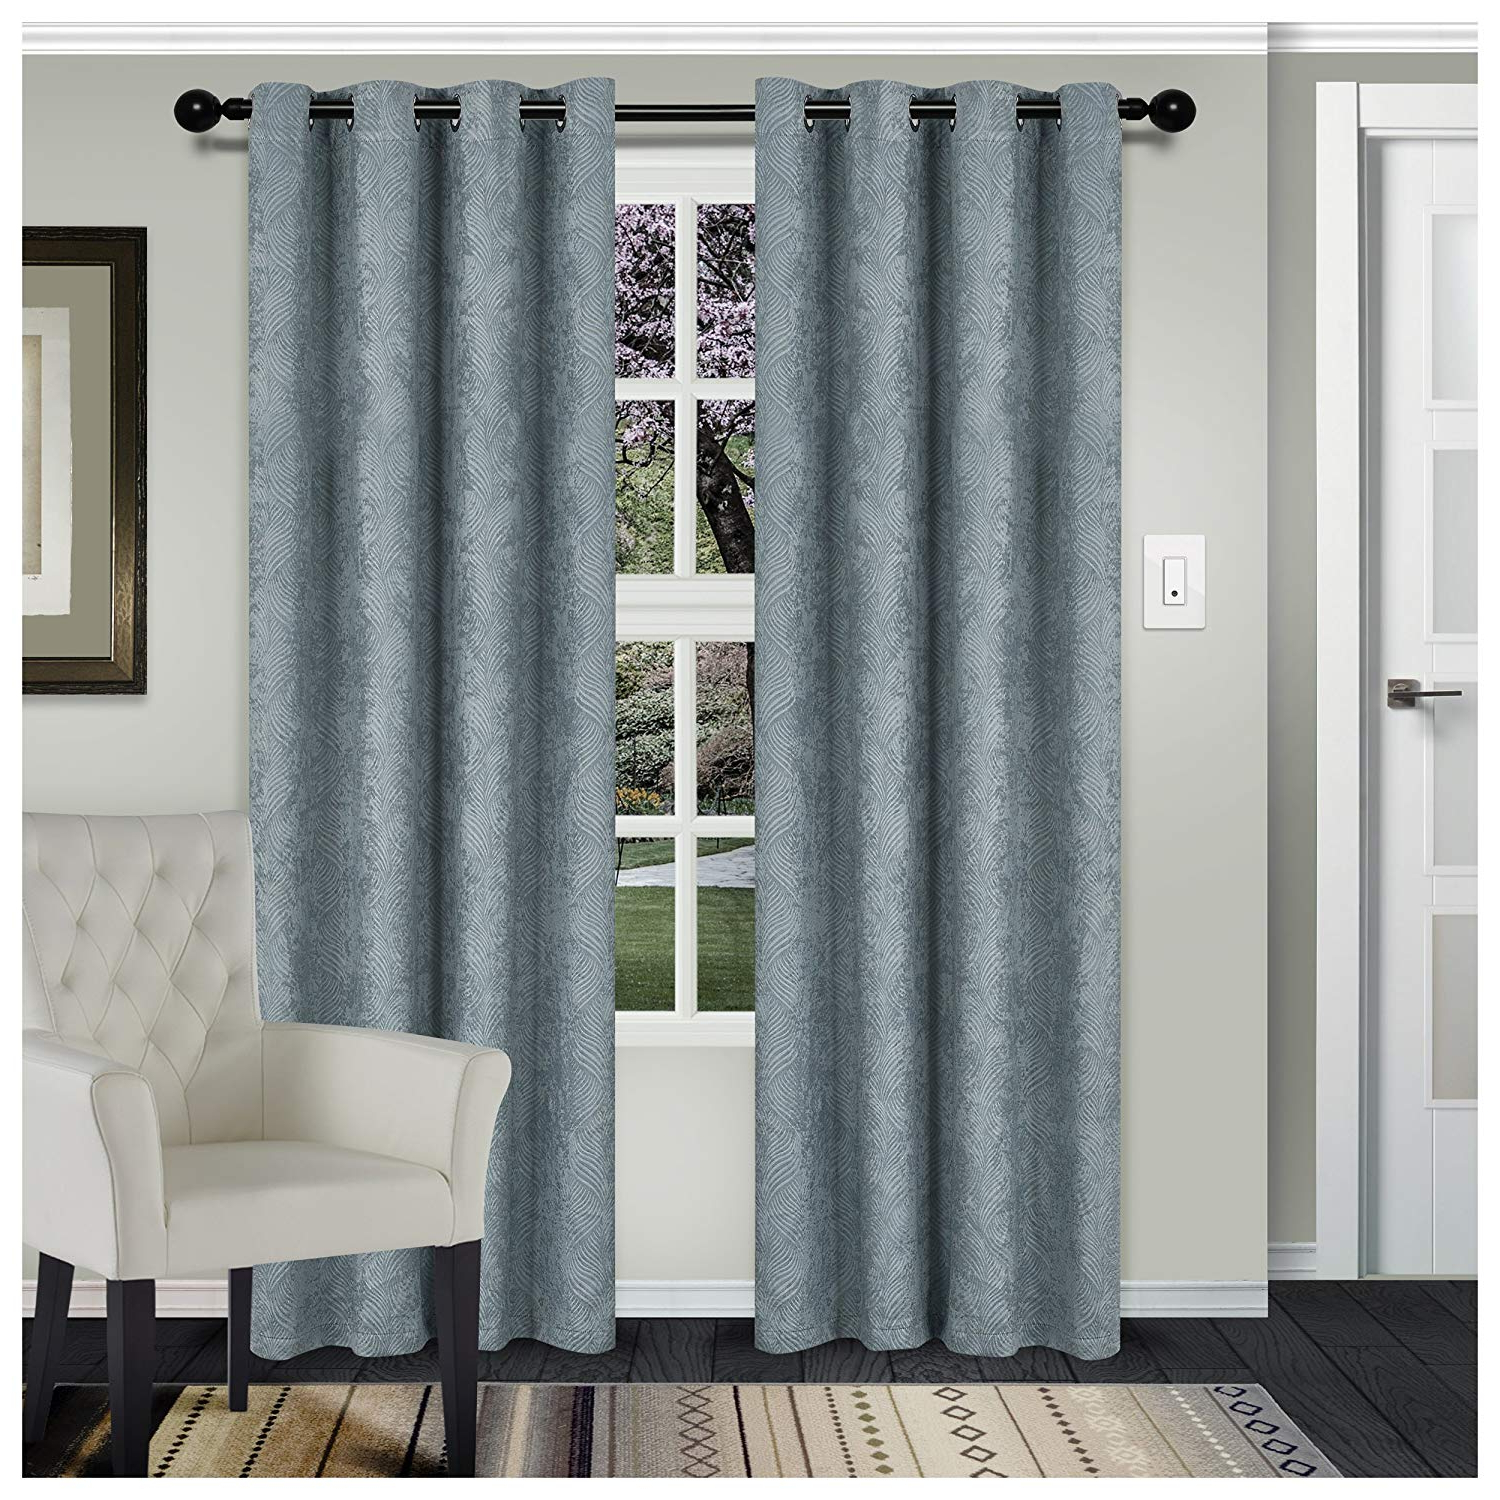 Superior Leaves Insulated Thermal Blackout Grommet Curtain Panel Pairs Within Latest Superior Waverly Blackout Curtain Set Of 2, Thermal Insulated Panel Pair  With Grommet Top Header, Beautiful Embossed Wave Room Darkening Drapes, (View 15 of 20)